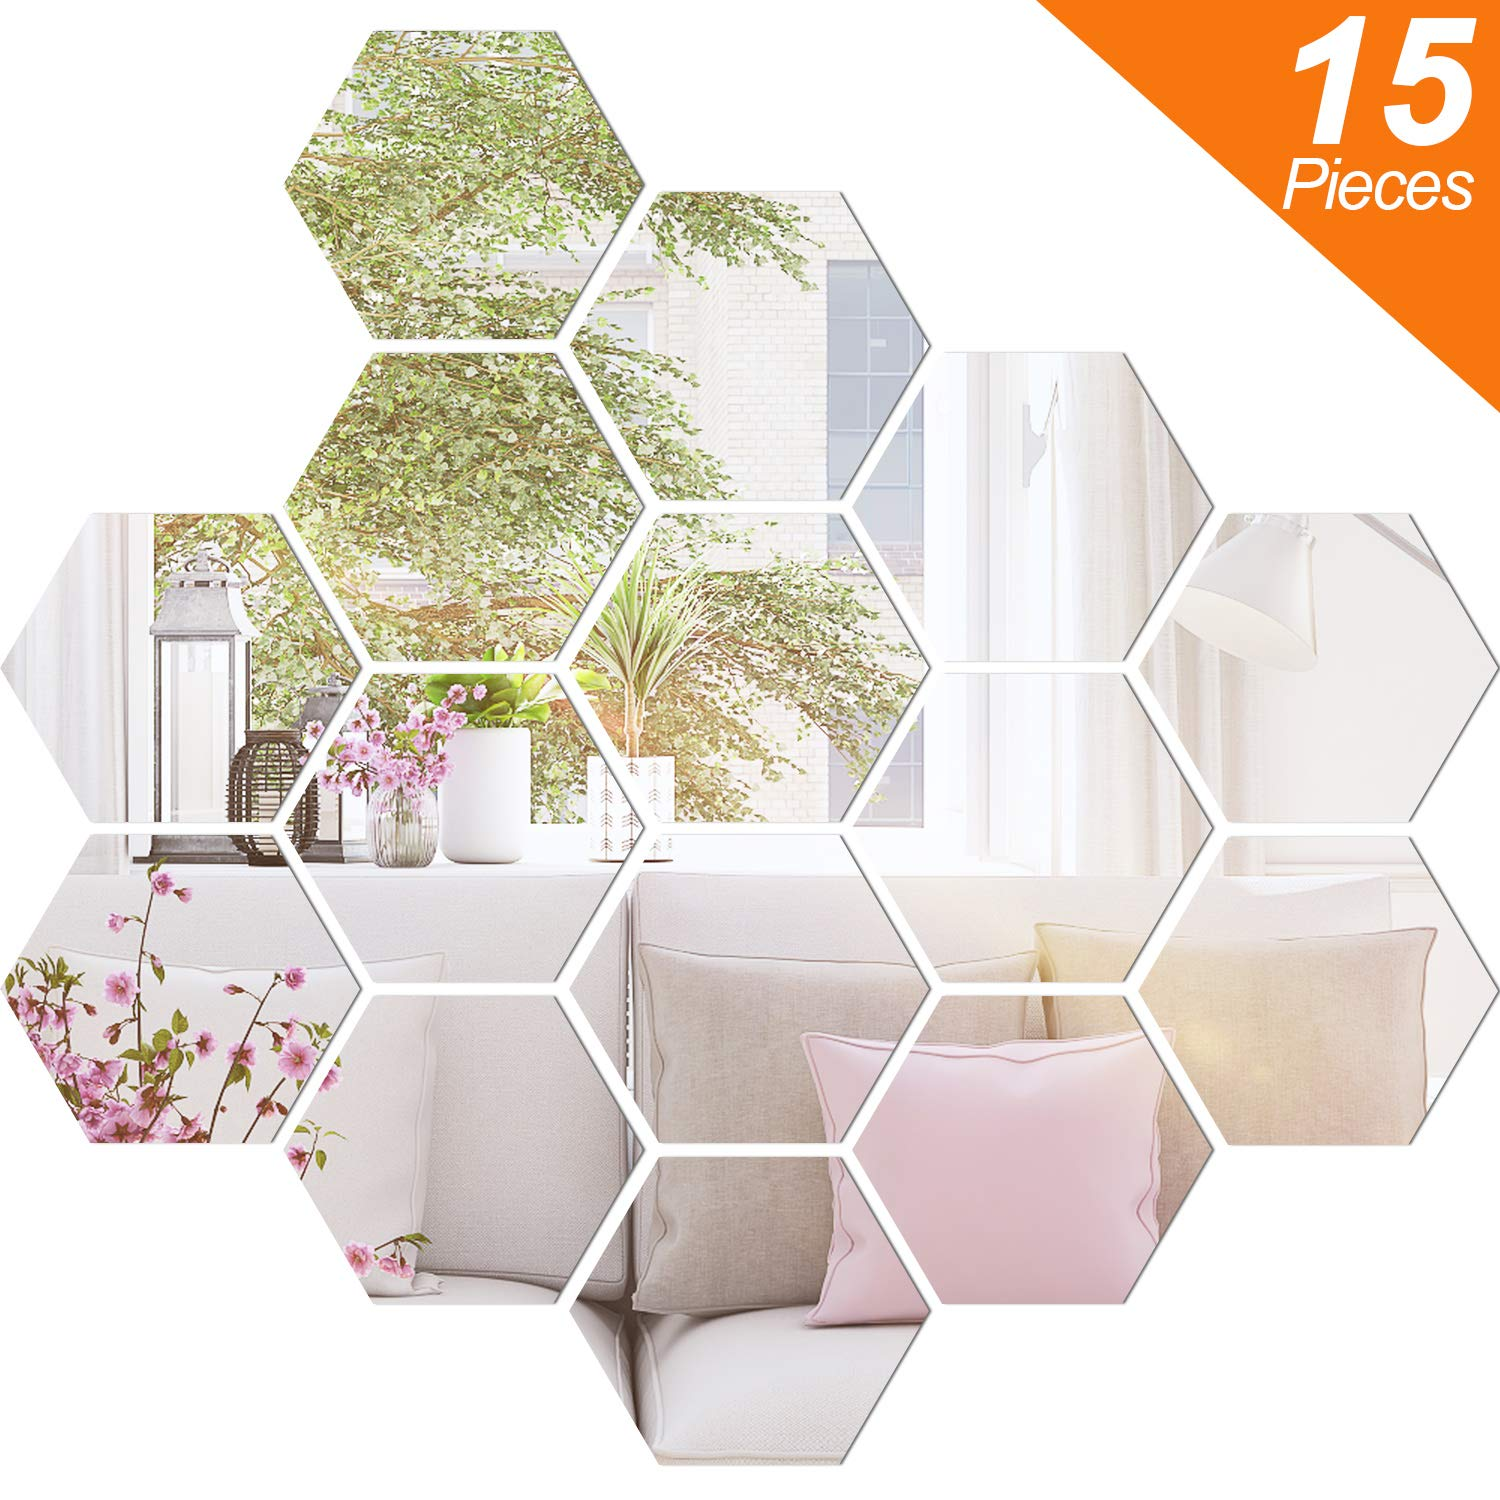 BBTO Mirror Sheets Flexible Non Glass Mirror Plastic Mirror Self Adhesive Tiles Mirror Wall Stickers (15 Pieces, Size 4)